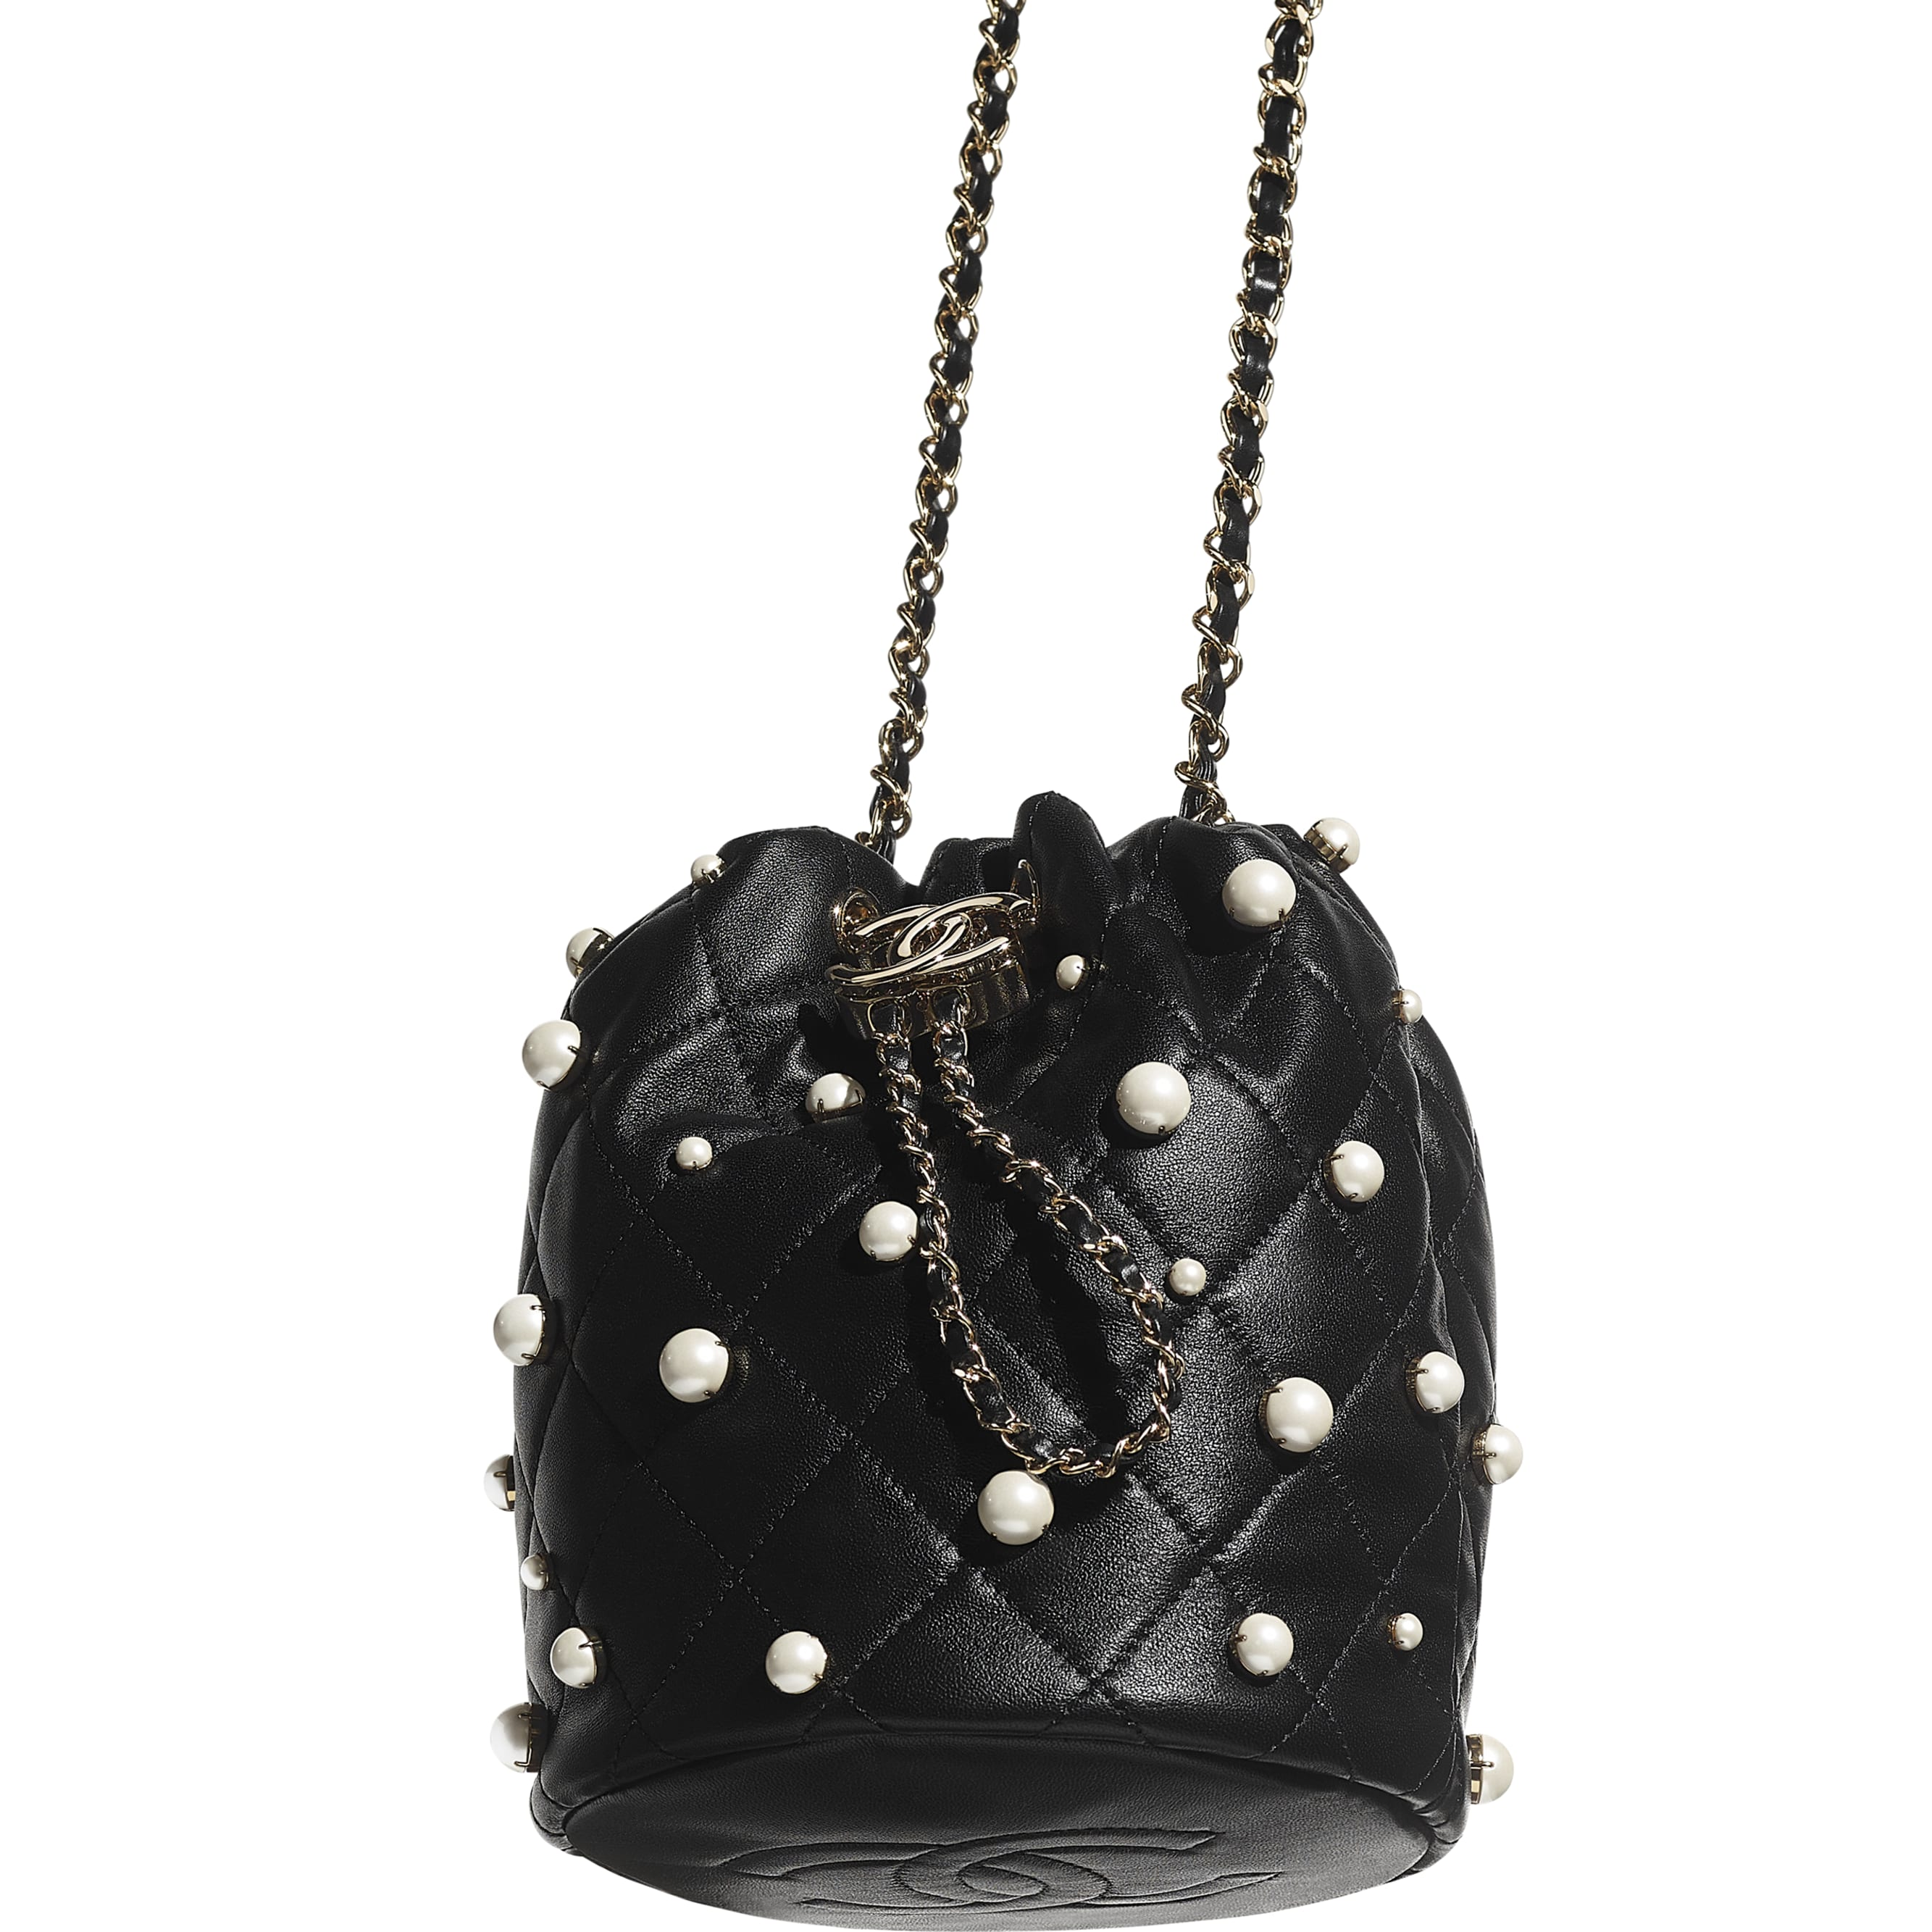 Small Drawstring Bag - Black - Lambskin, Imitation Pearls & Gold Metal - CHANEL - Extra view - see standard sized version